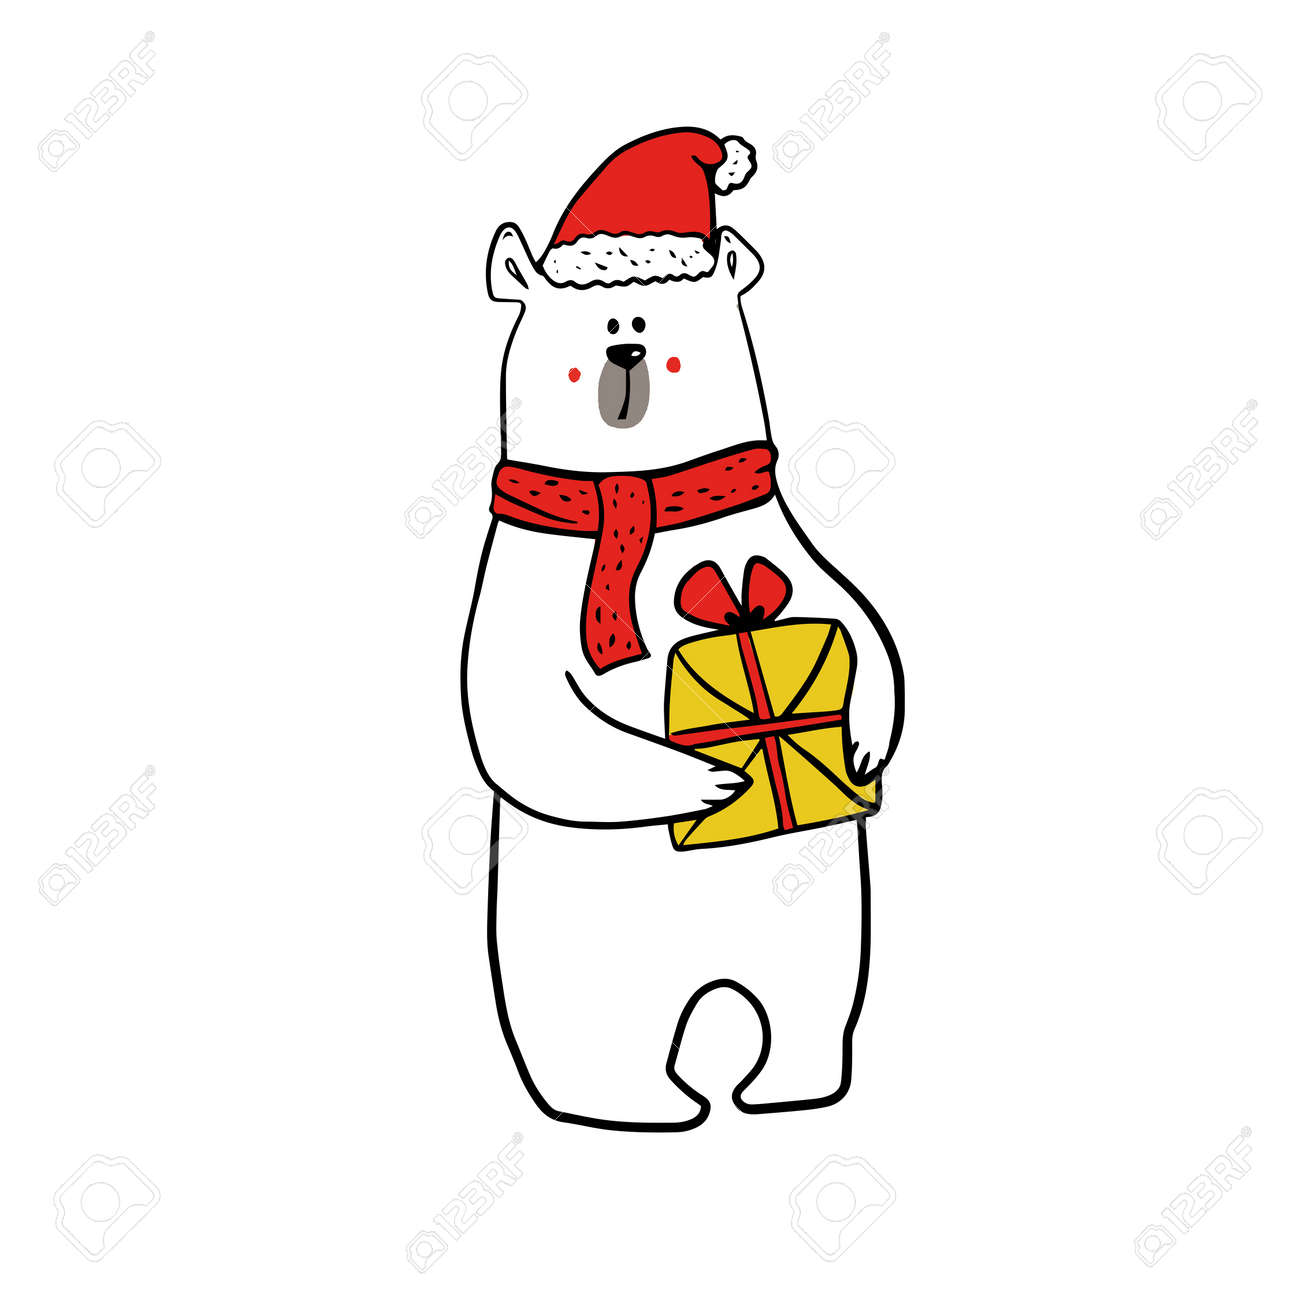 cute funy white bear in christmas outfit of santa claus with present. - 158515802